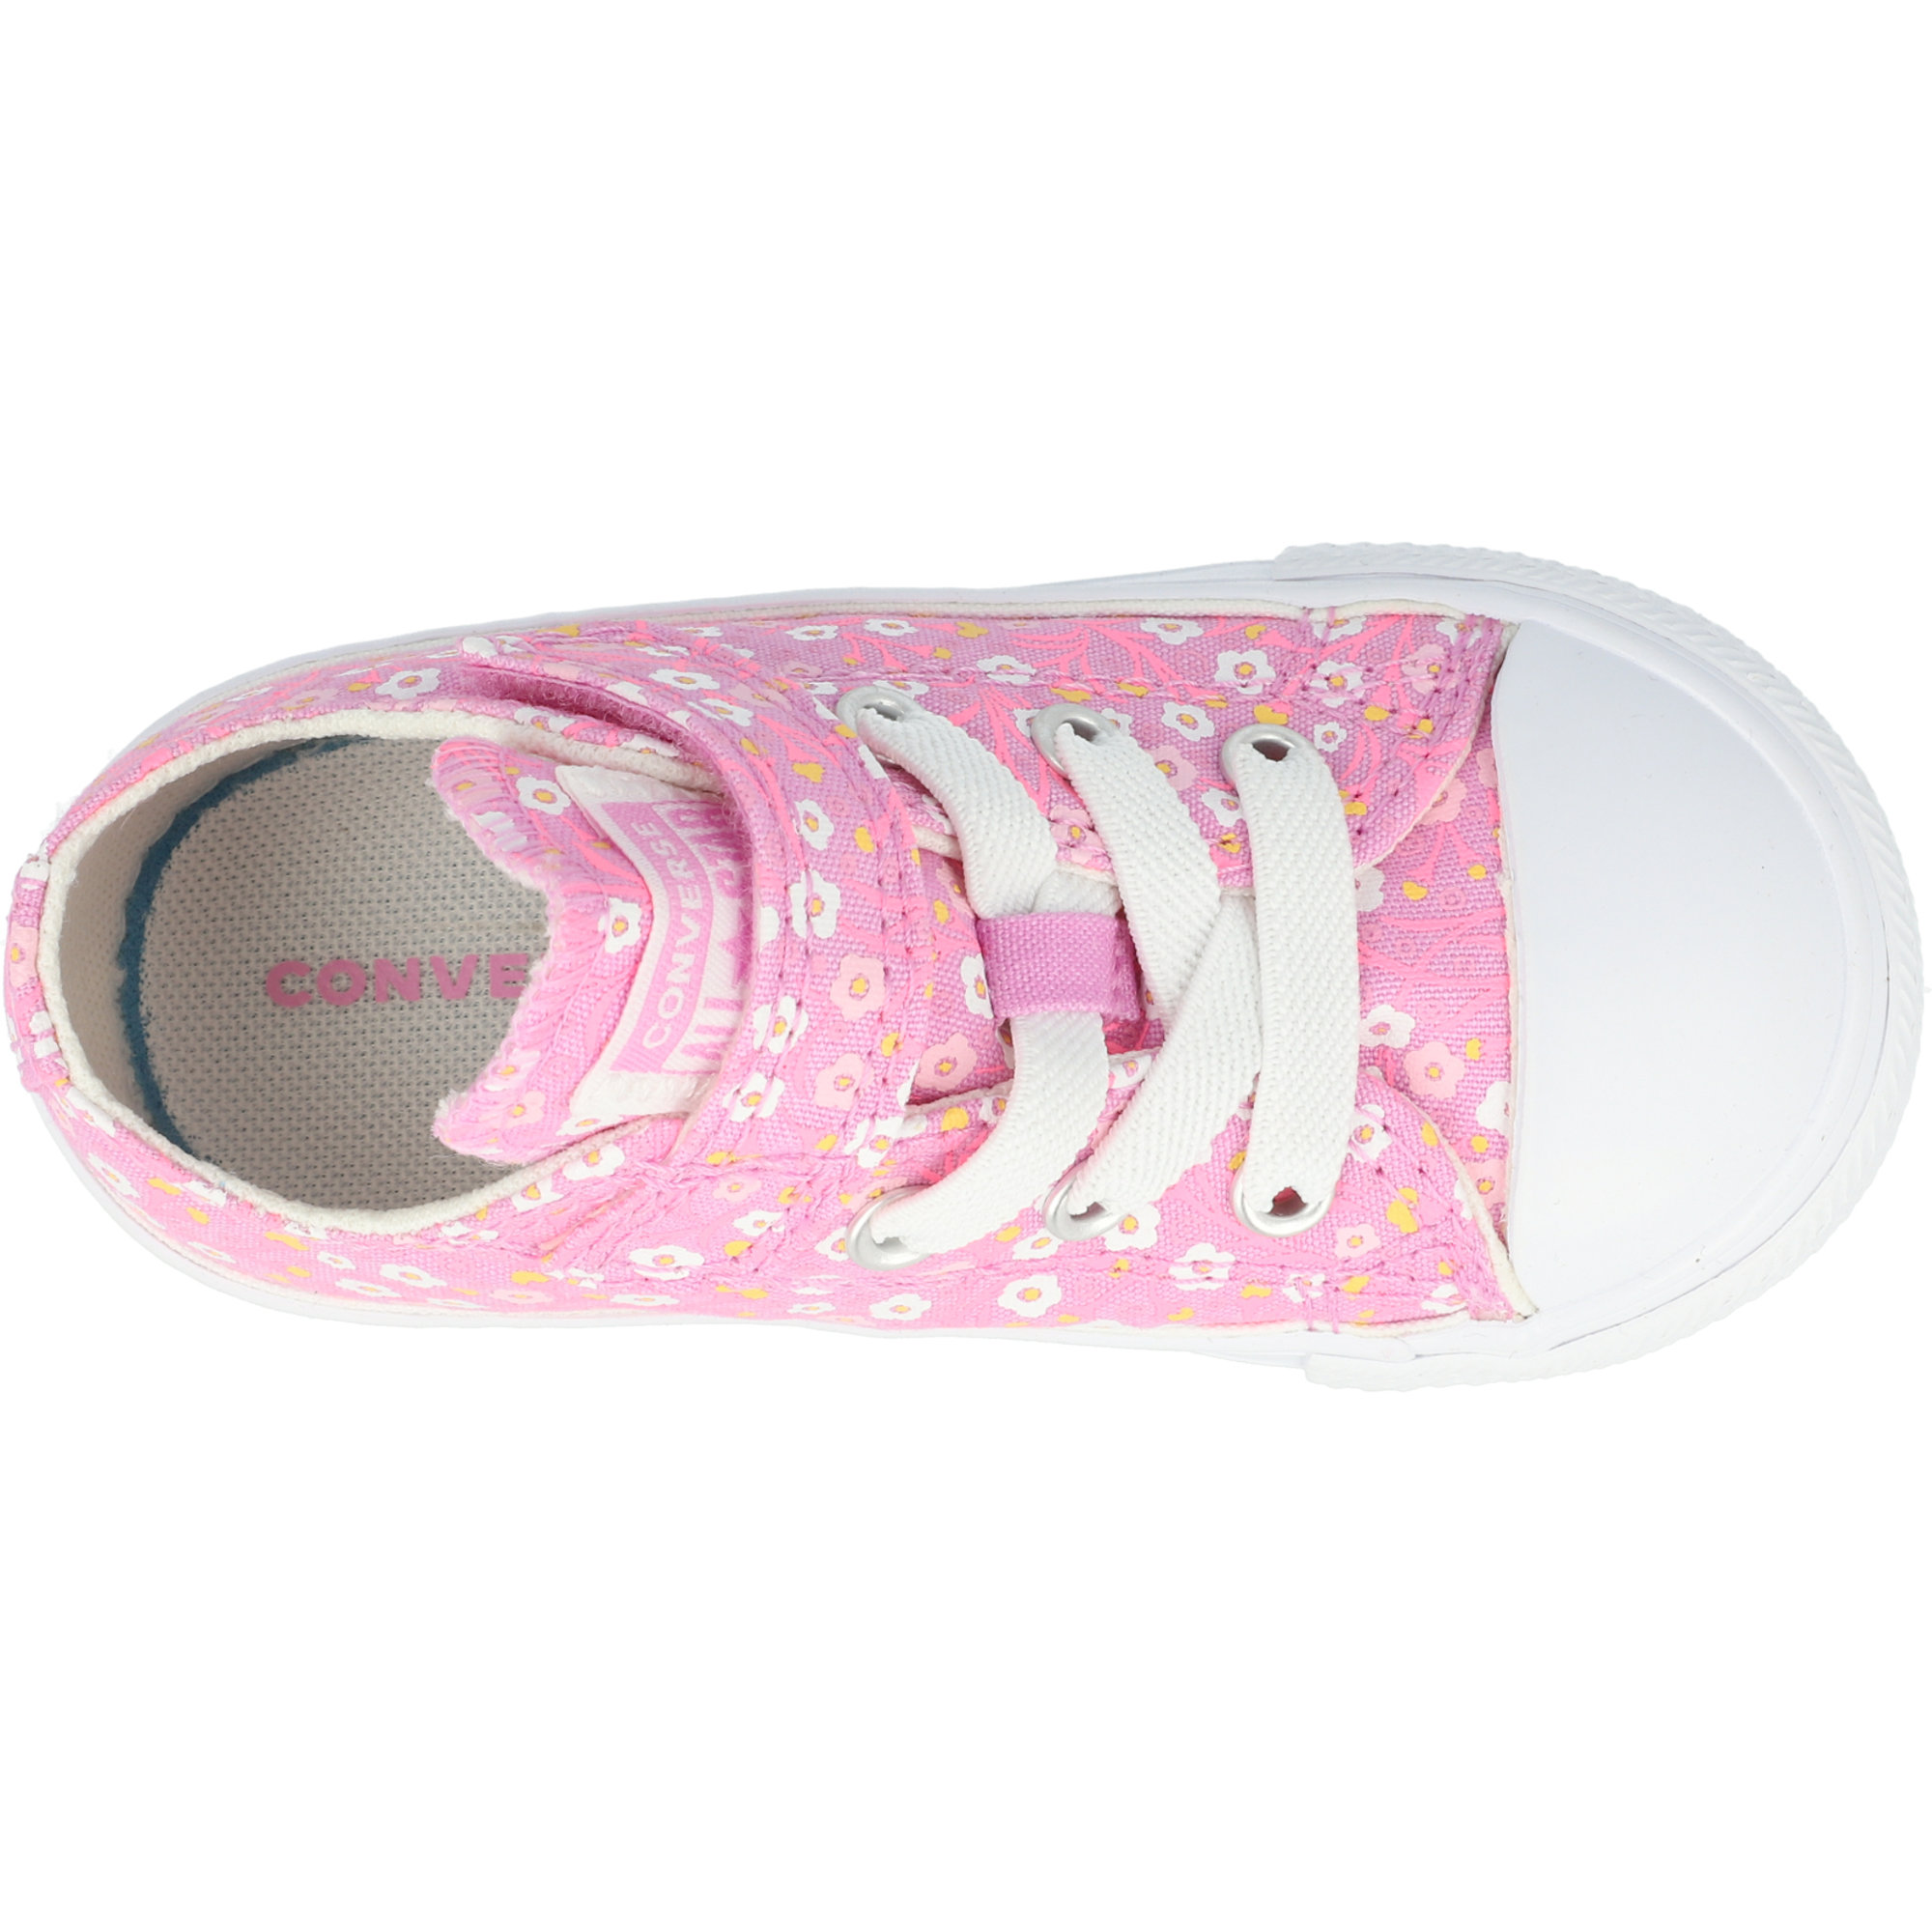 Converse Chuck Taylor All Star 1V Ditsy Floral Ox Peony Pink/White Canvas Infant